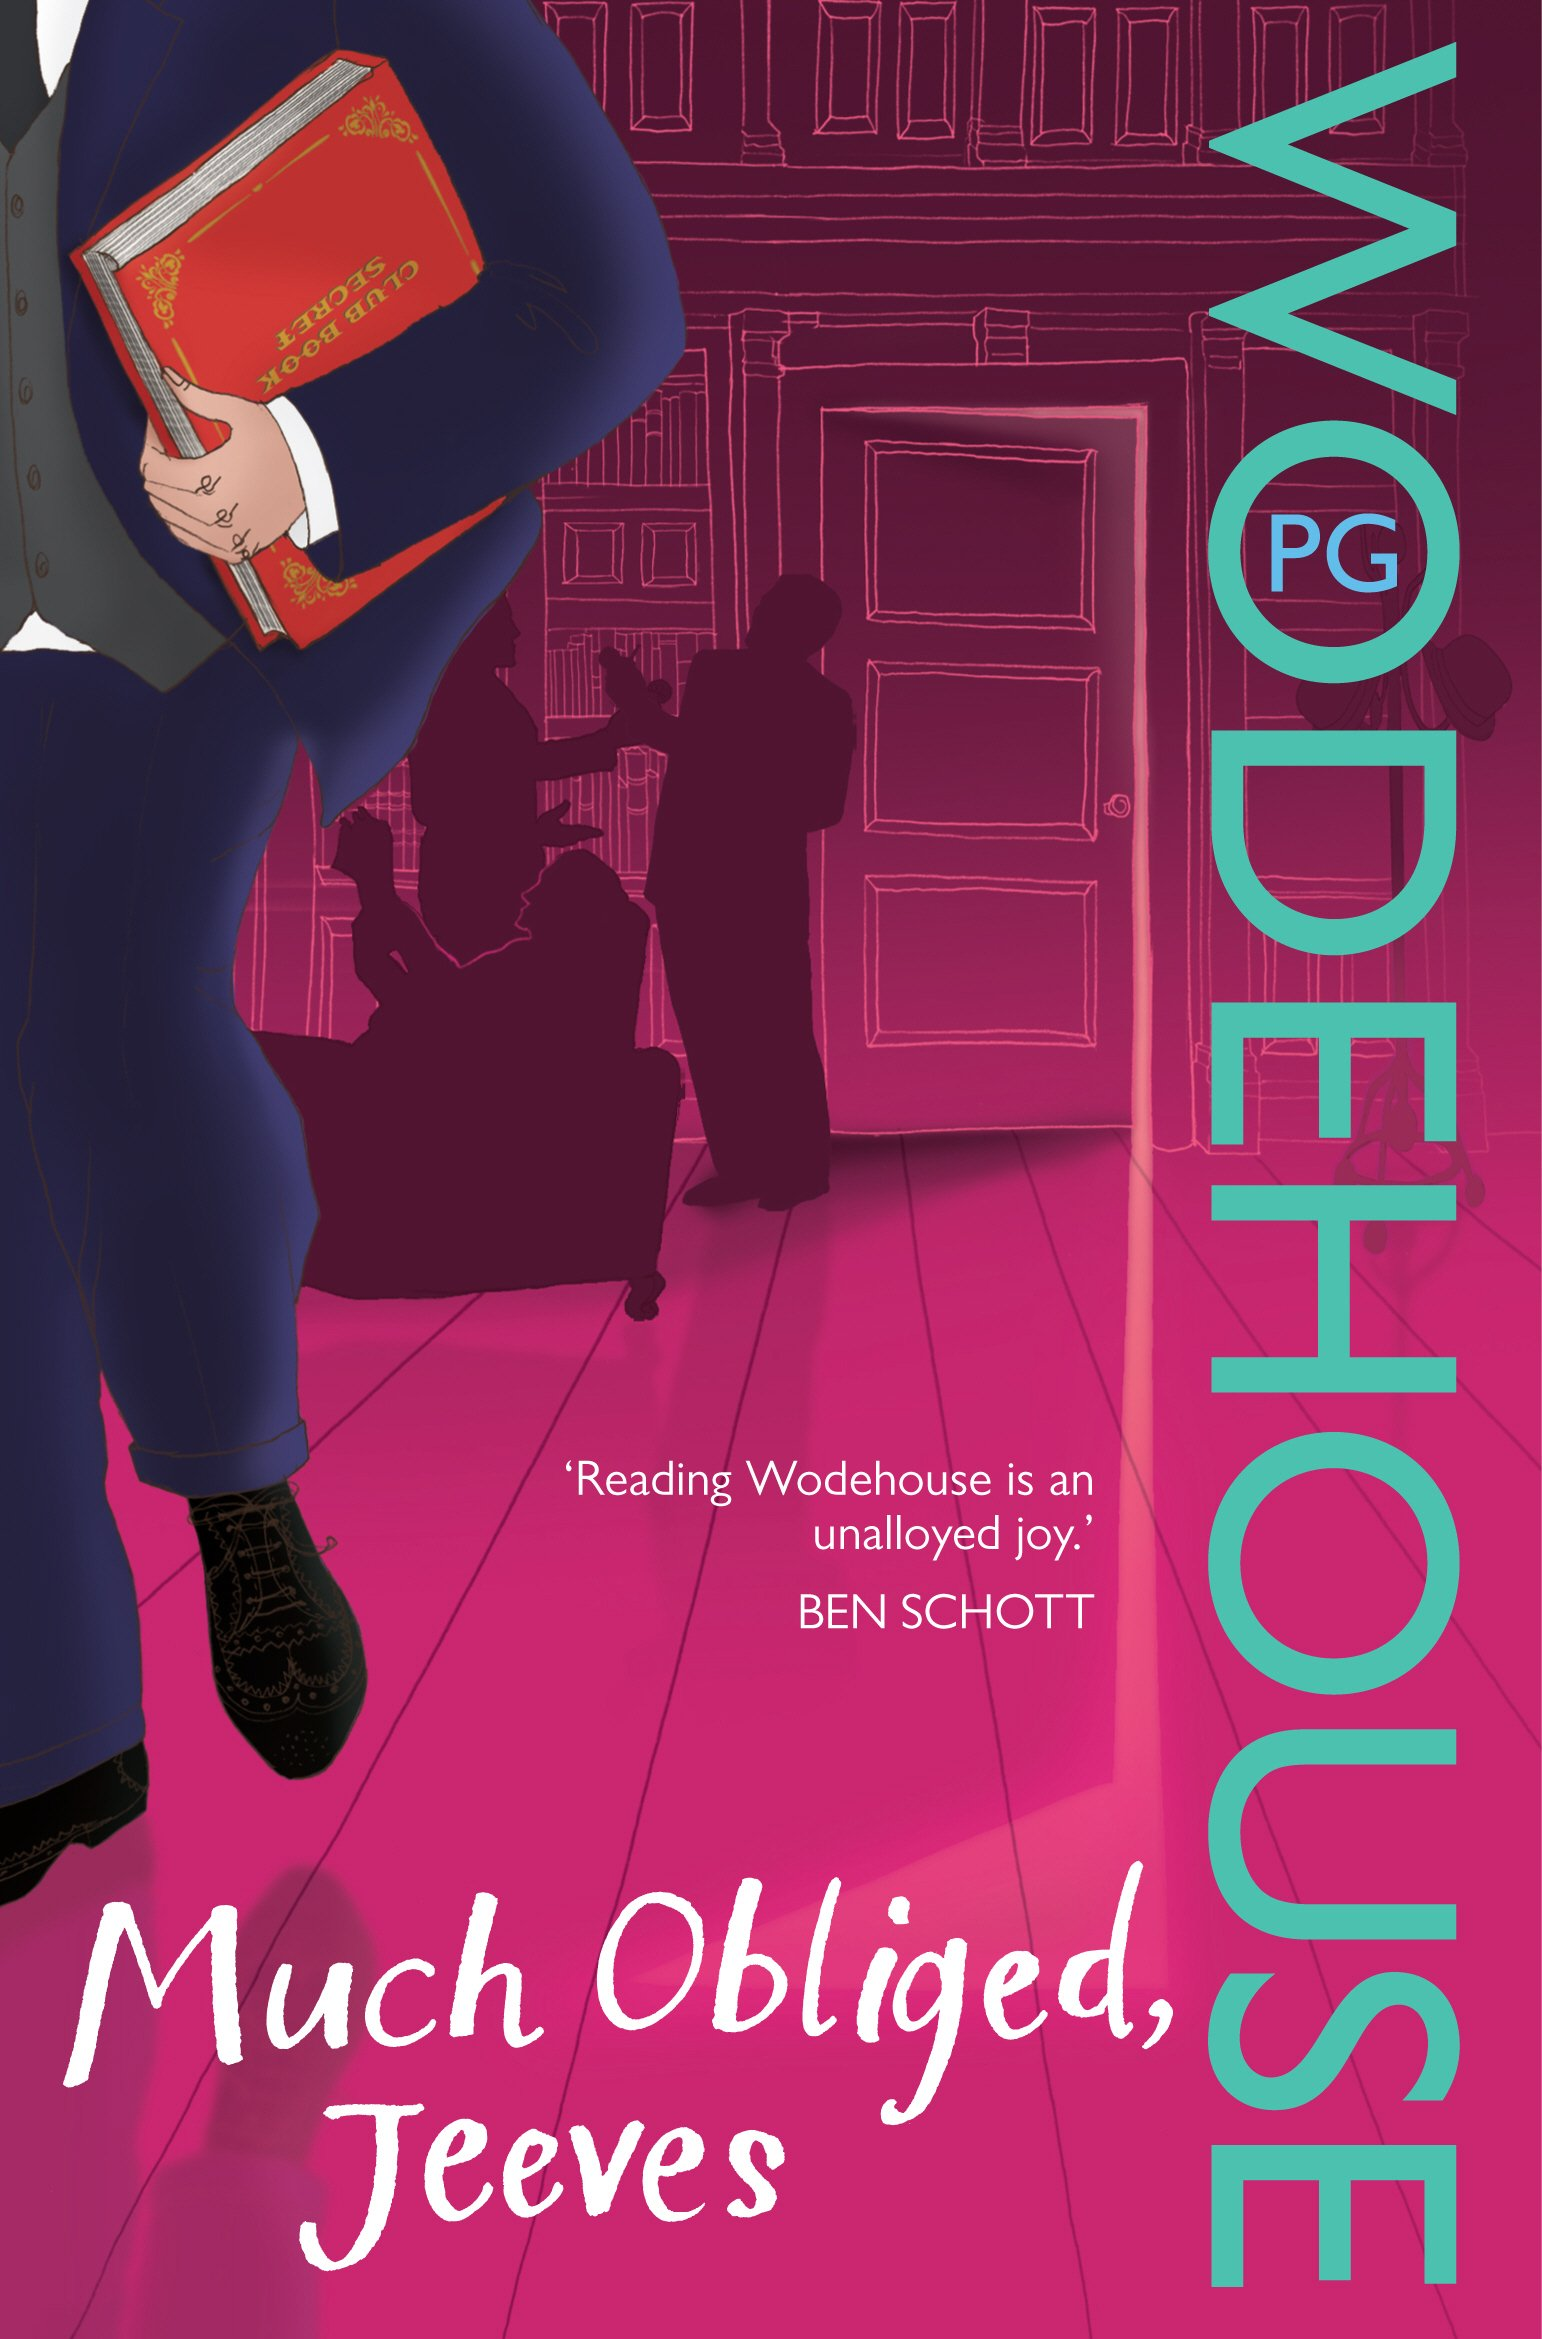 Much Obliged Jeeves Wodehouse P G 9780099513964 Amazon Com Books See more of much obliged on facebook. much obliged jeeves wodehouse p g